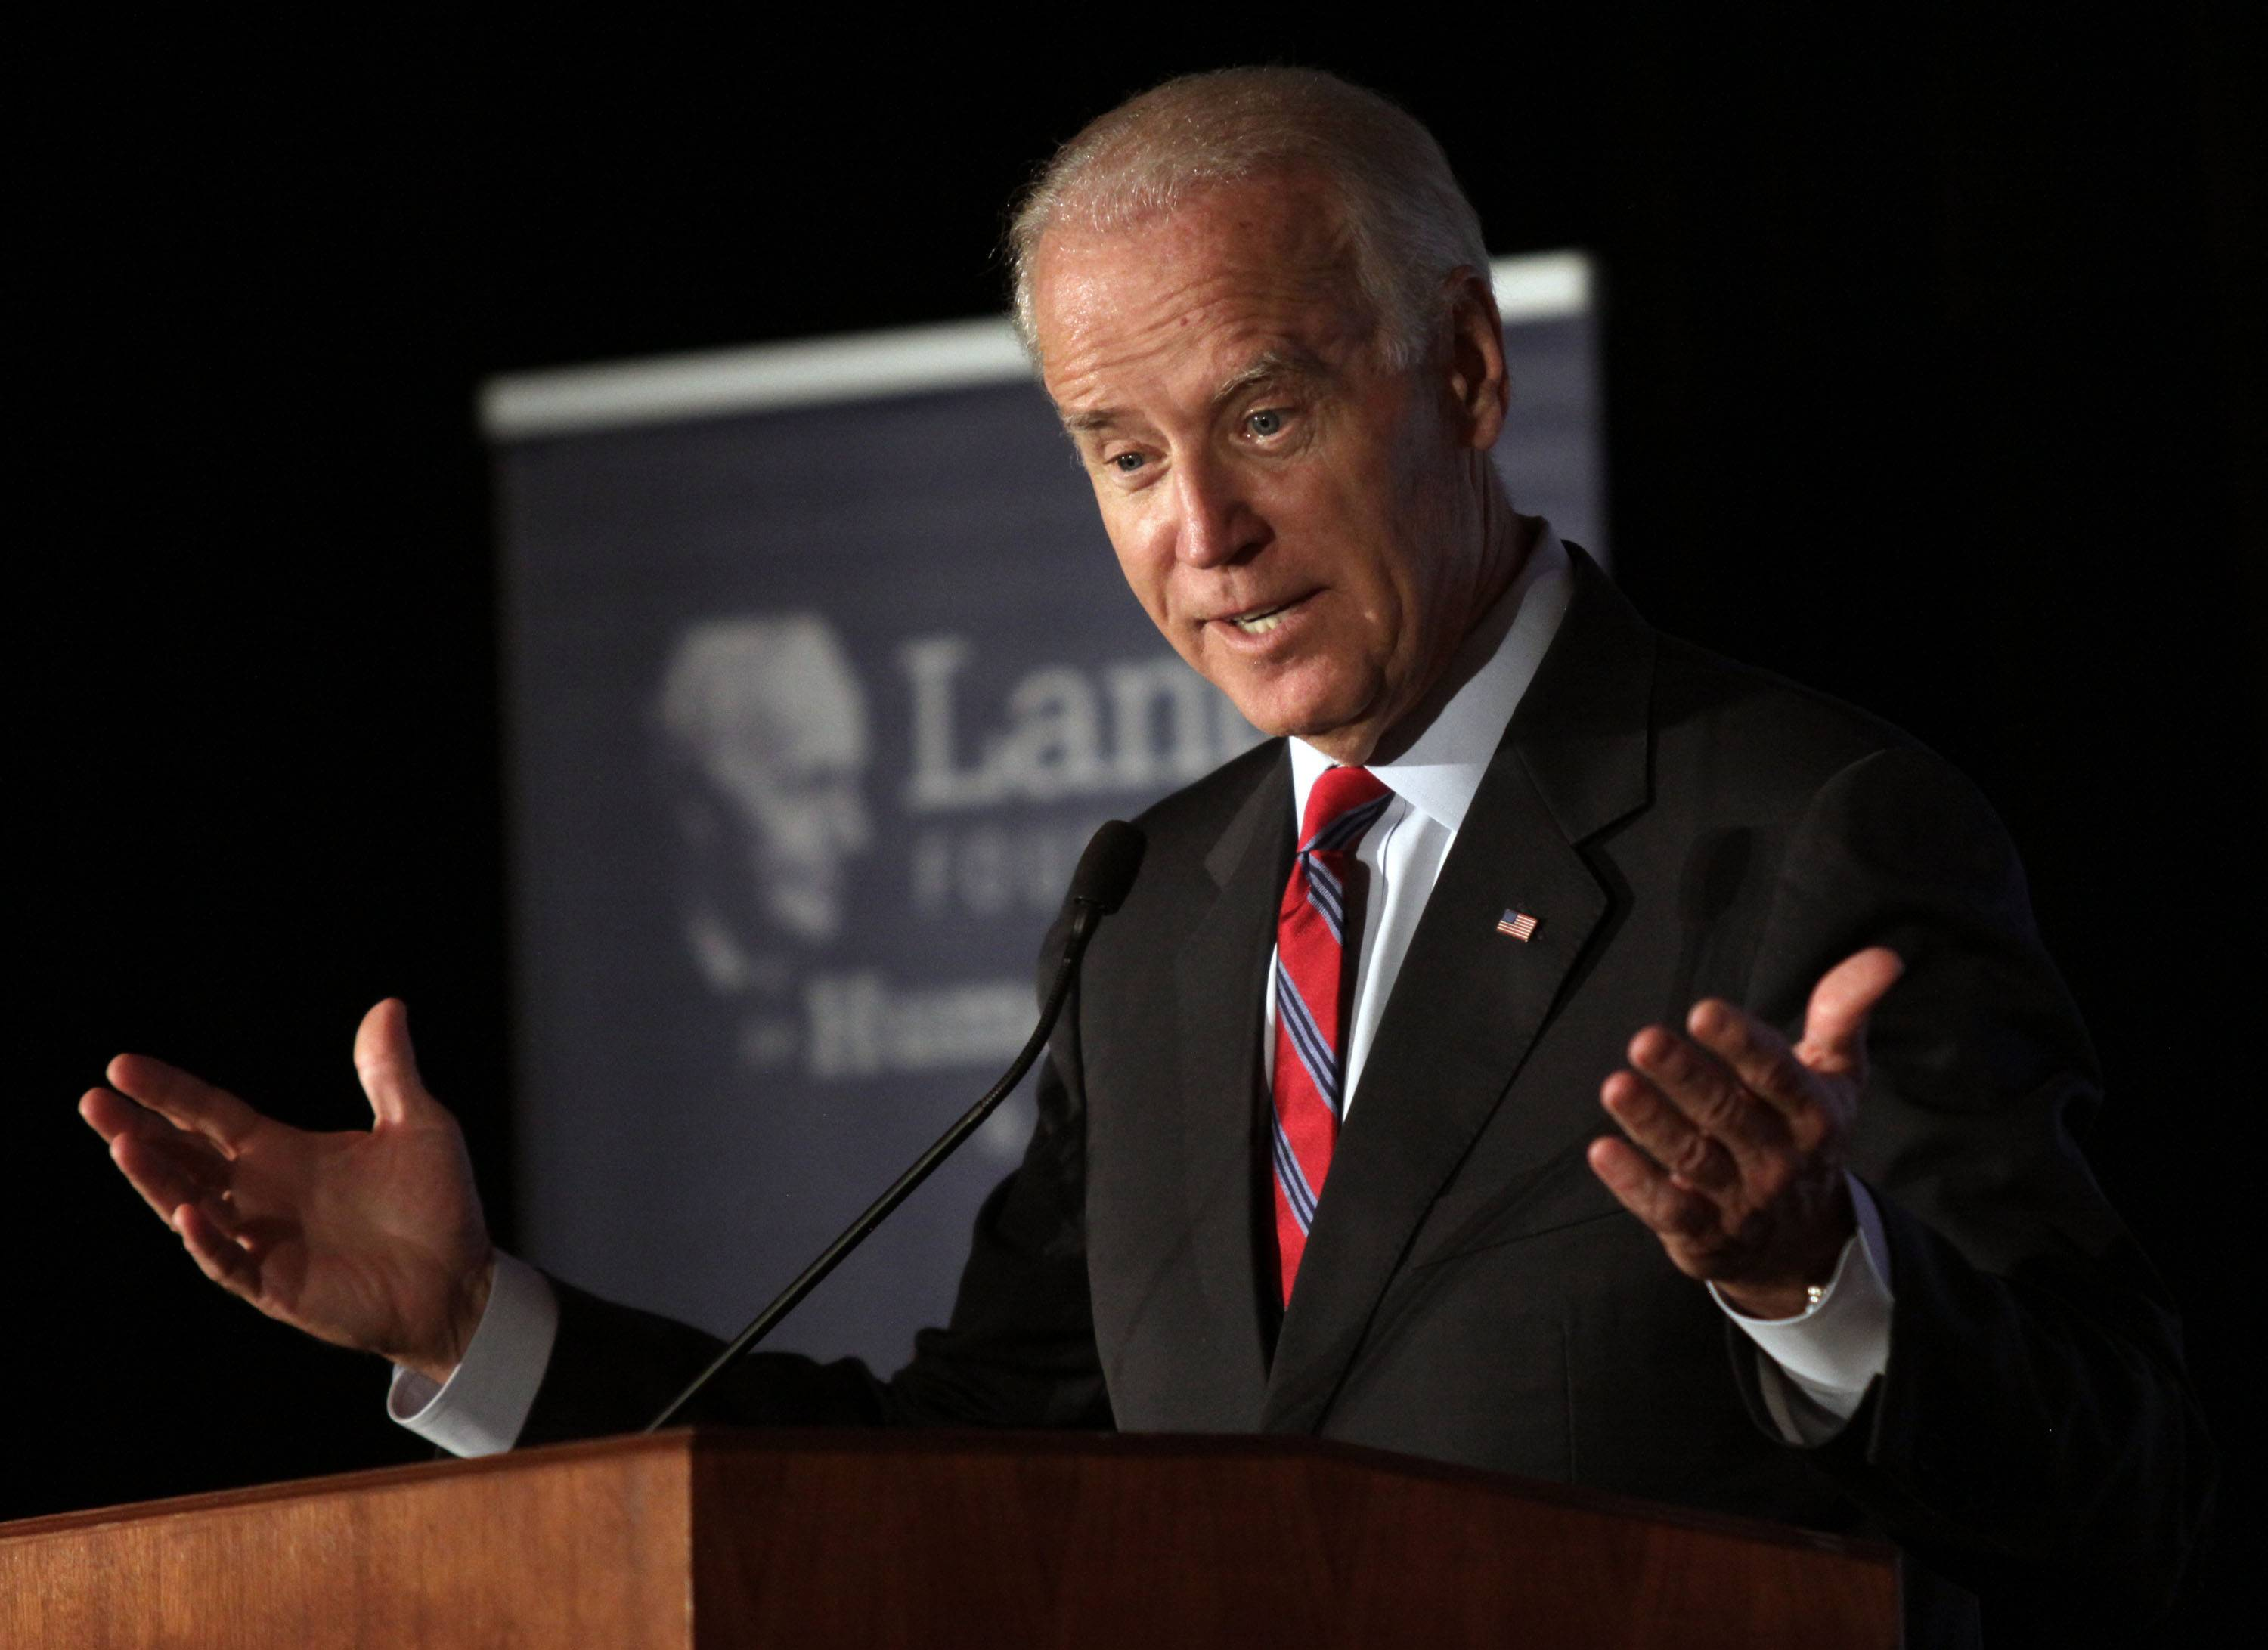 Vice President Joe Biden is scheduled to address the National Governors Association conference in Nashville, Tenn., Friday, July 11, 2014.